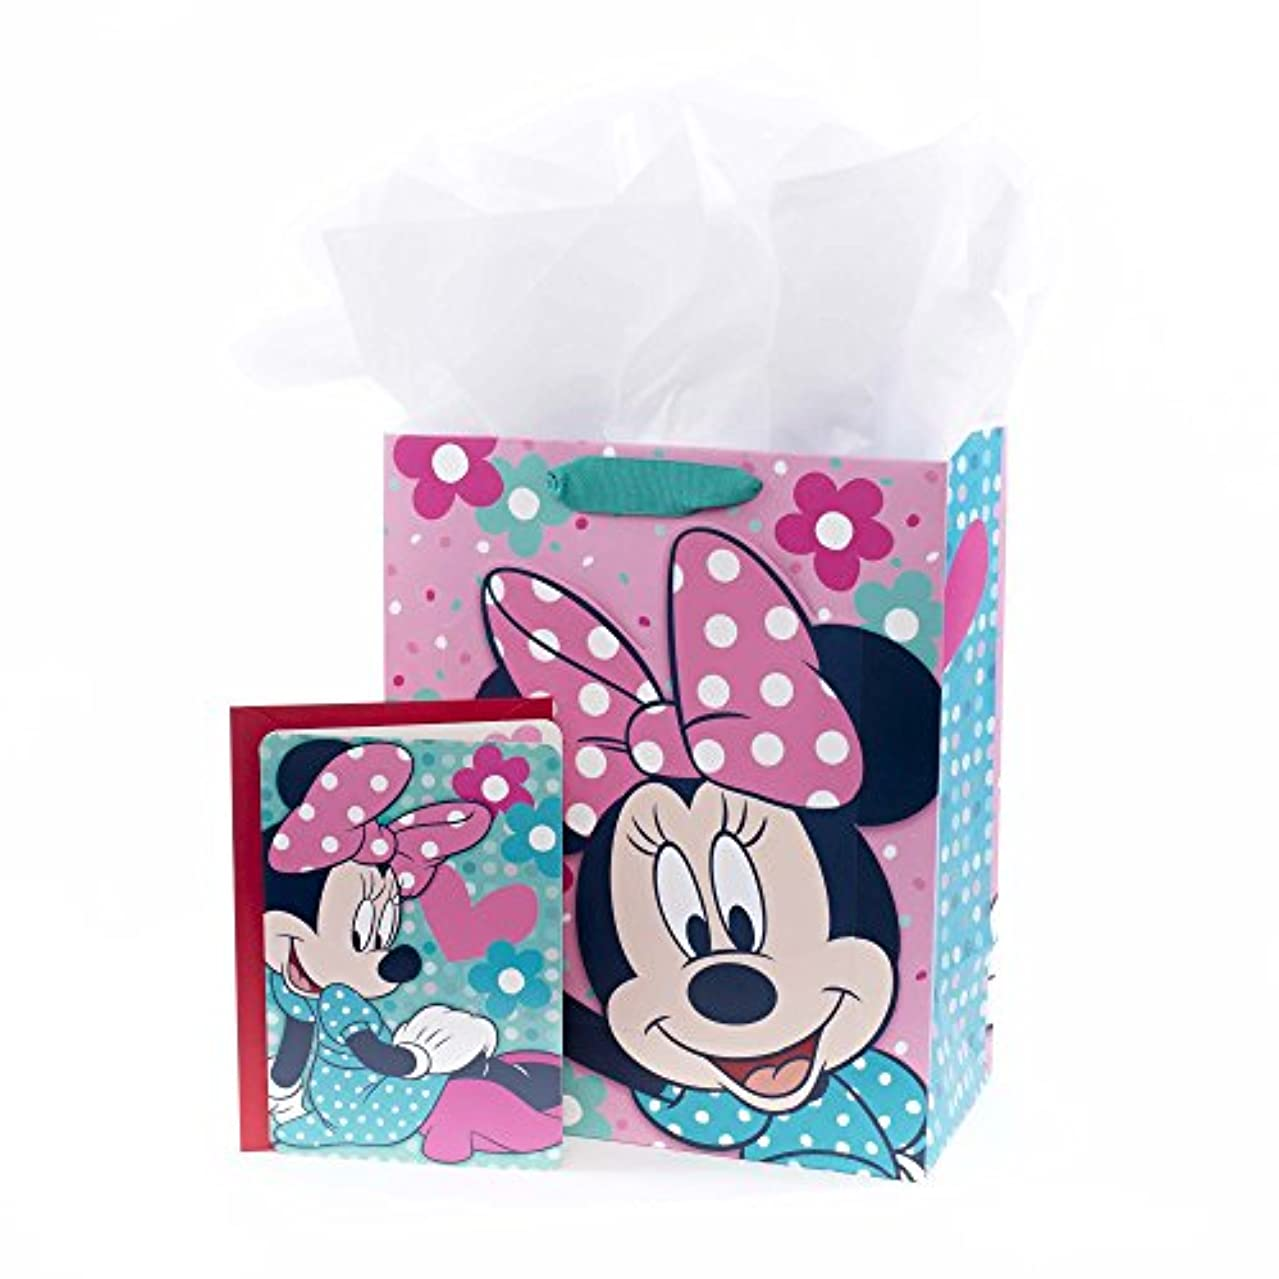 Hallmark Large Gift Bag with Birthday Card and Tissue Paper (Minnie Mouse)